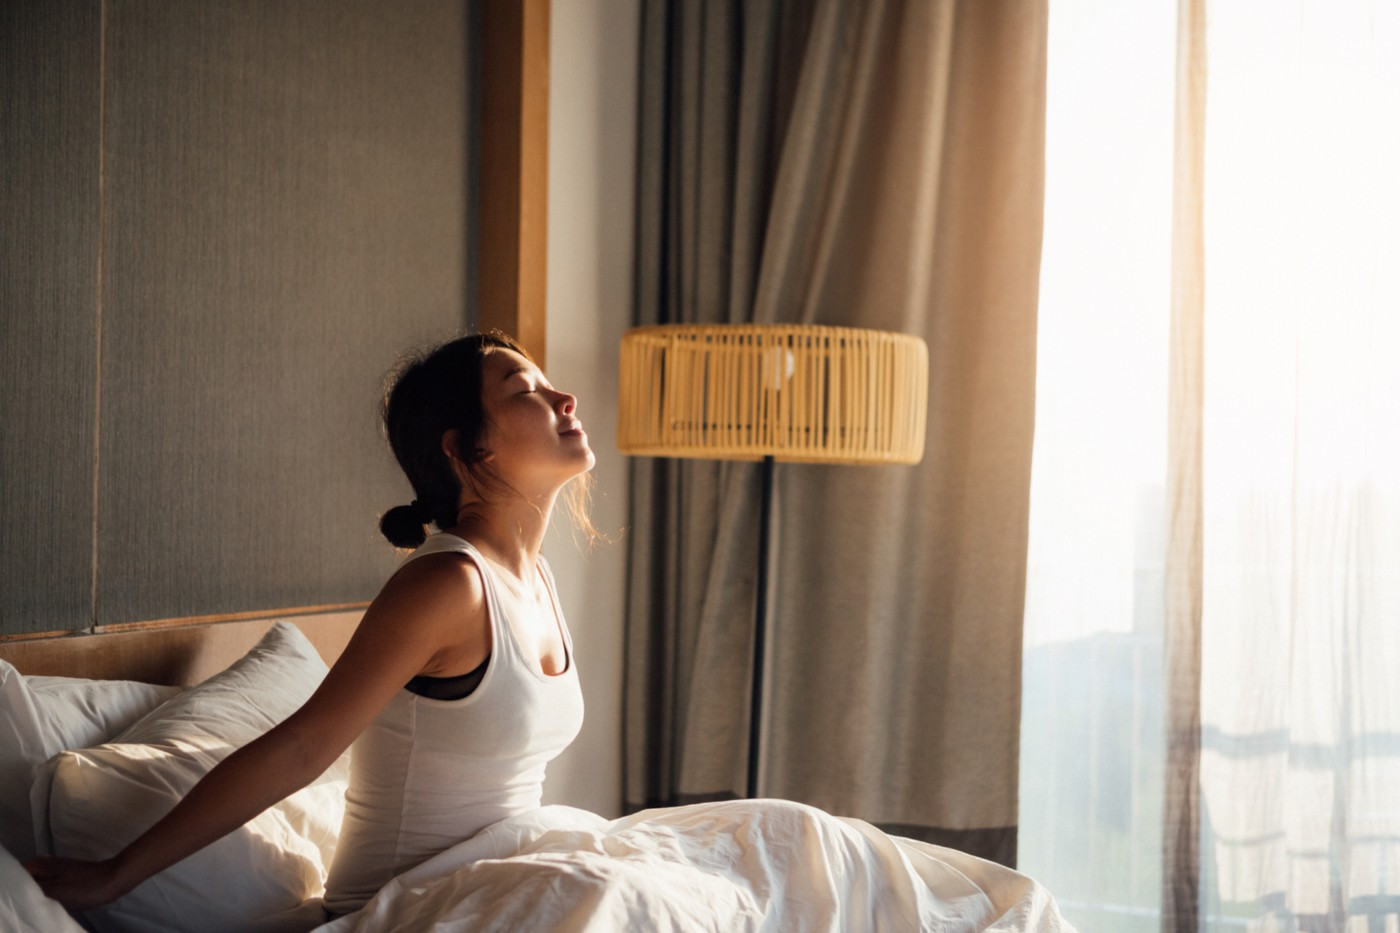 Woman getting out of bed ready to face the day.